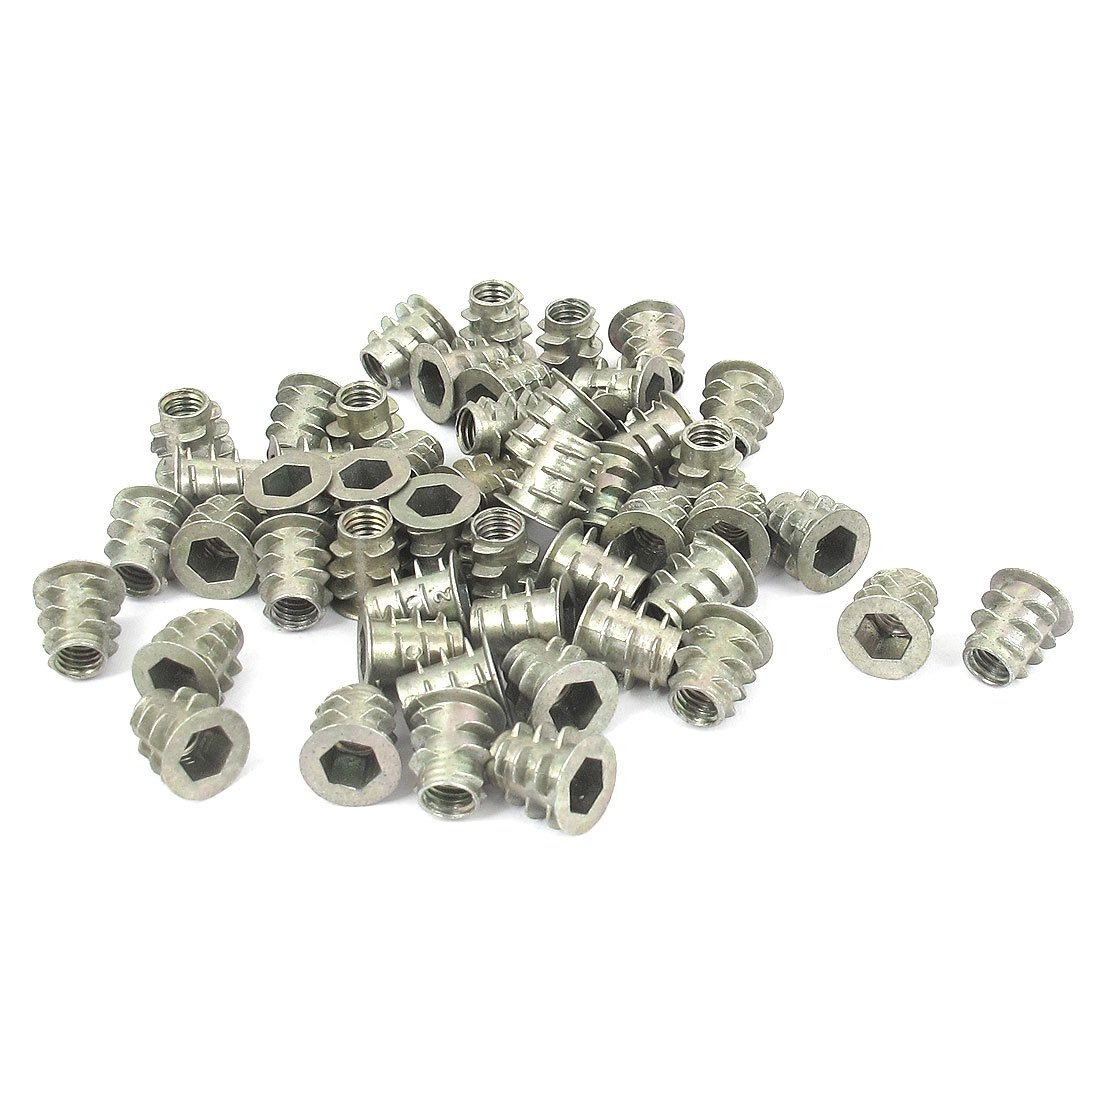 uxcell Threaded Insert Nuts Zinc Alloy Hex-Flush M6 Internal Threads 25mm Length 30pcs a18071100ux0271